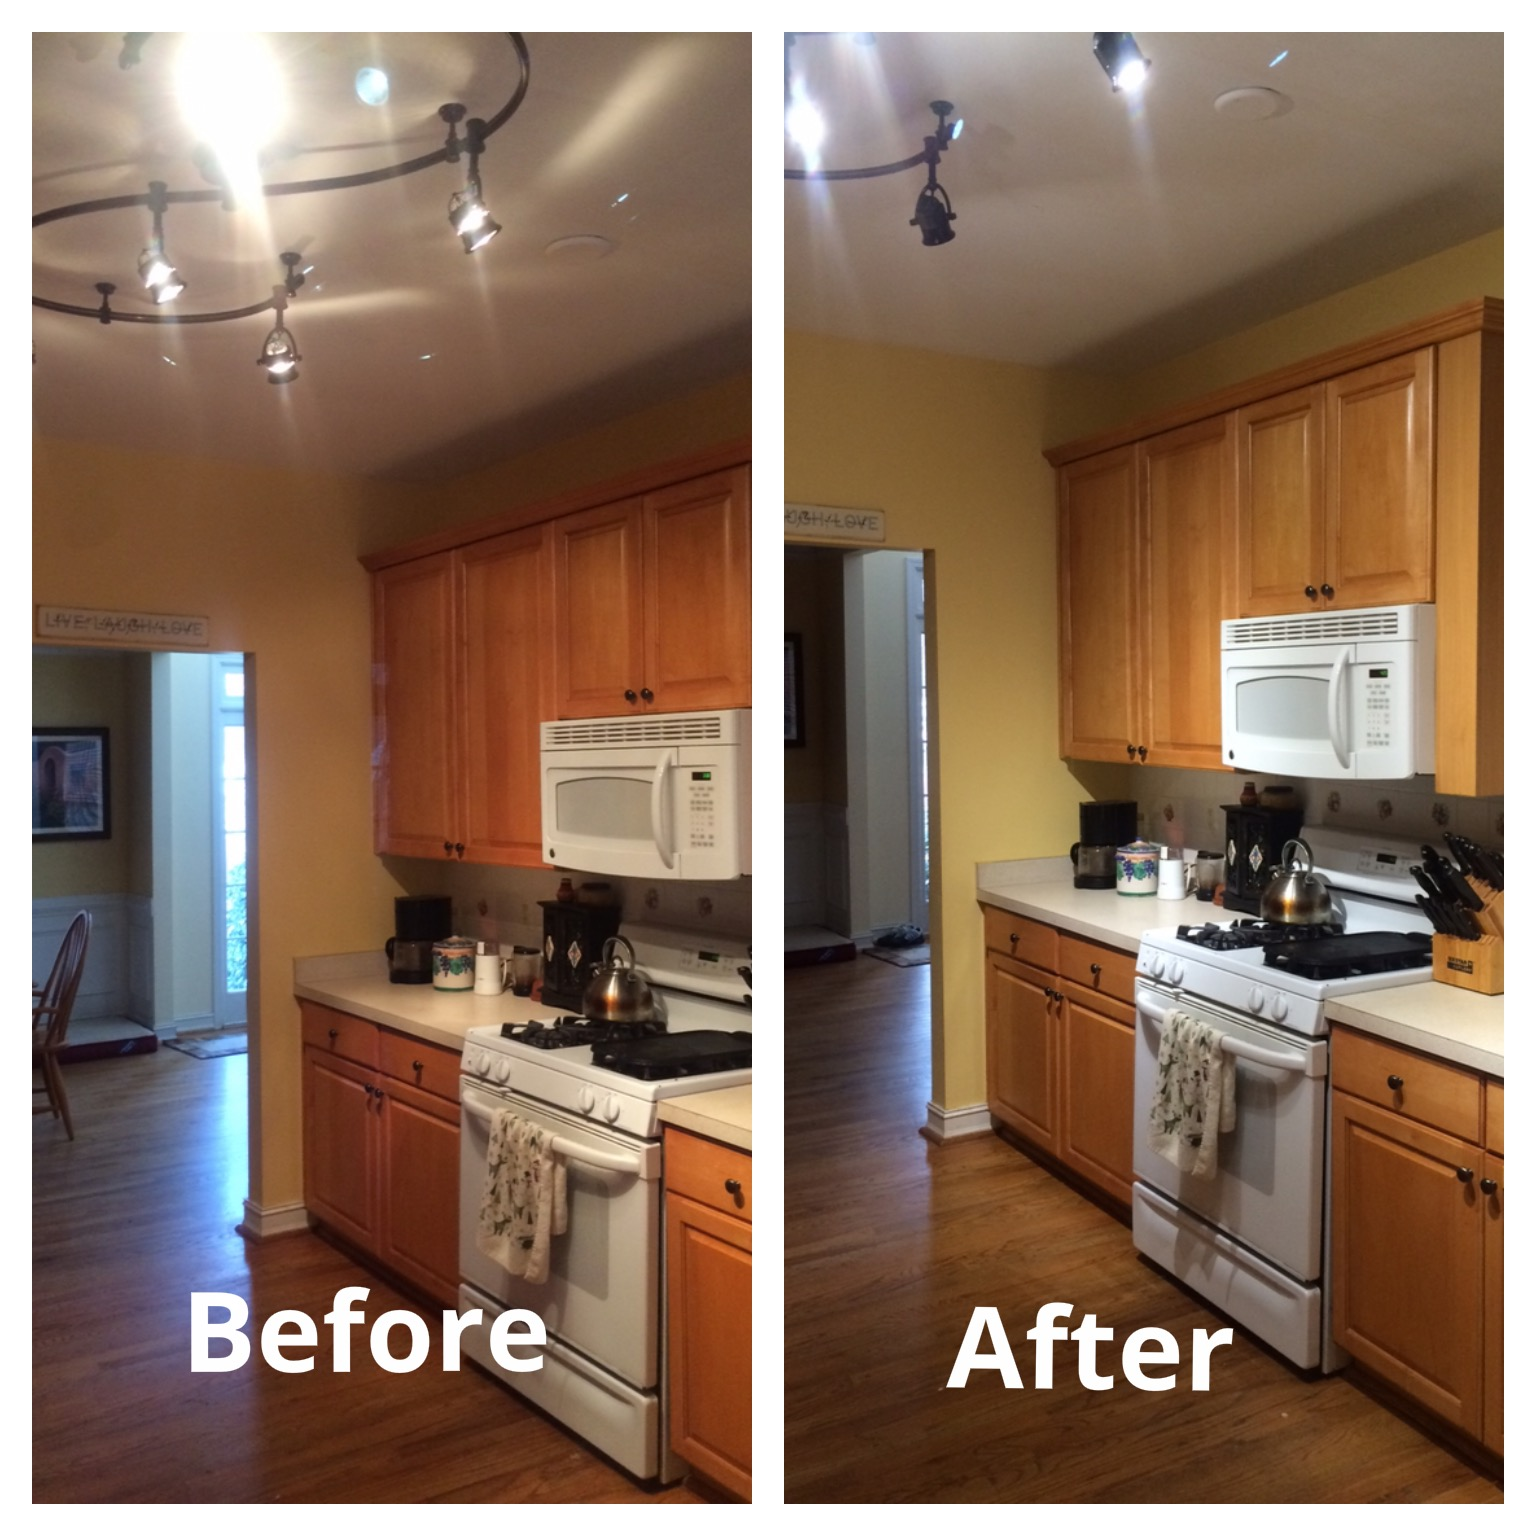 Kitchen Lighting Led Led lights replace halogens in kitchen update energy water kitchen lights workwithnaturefo